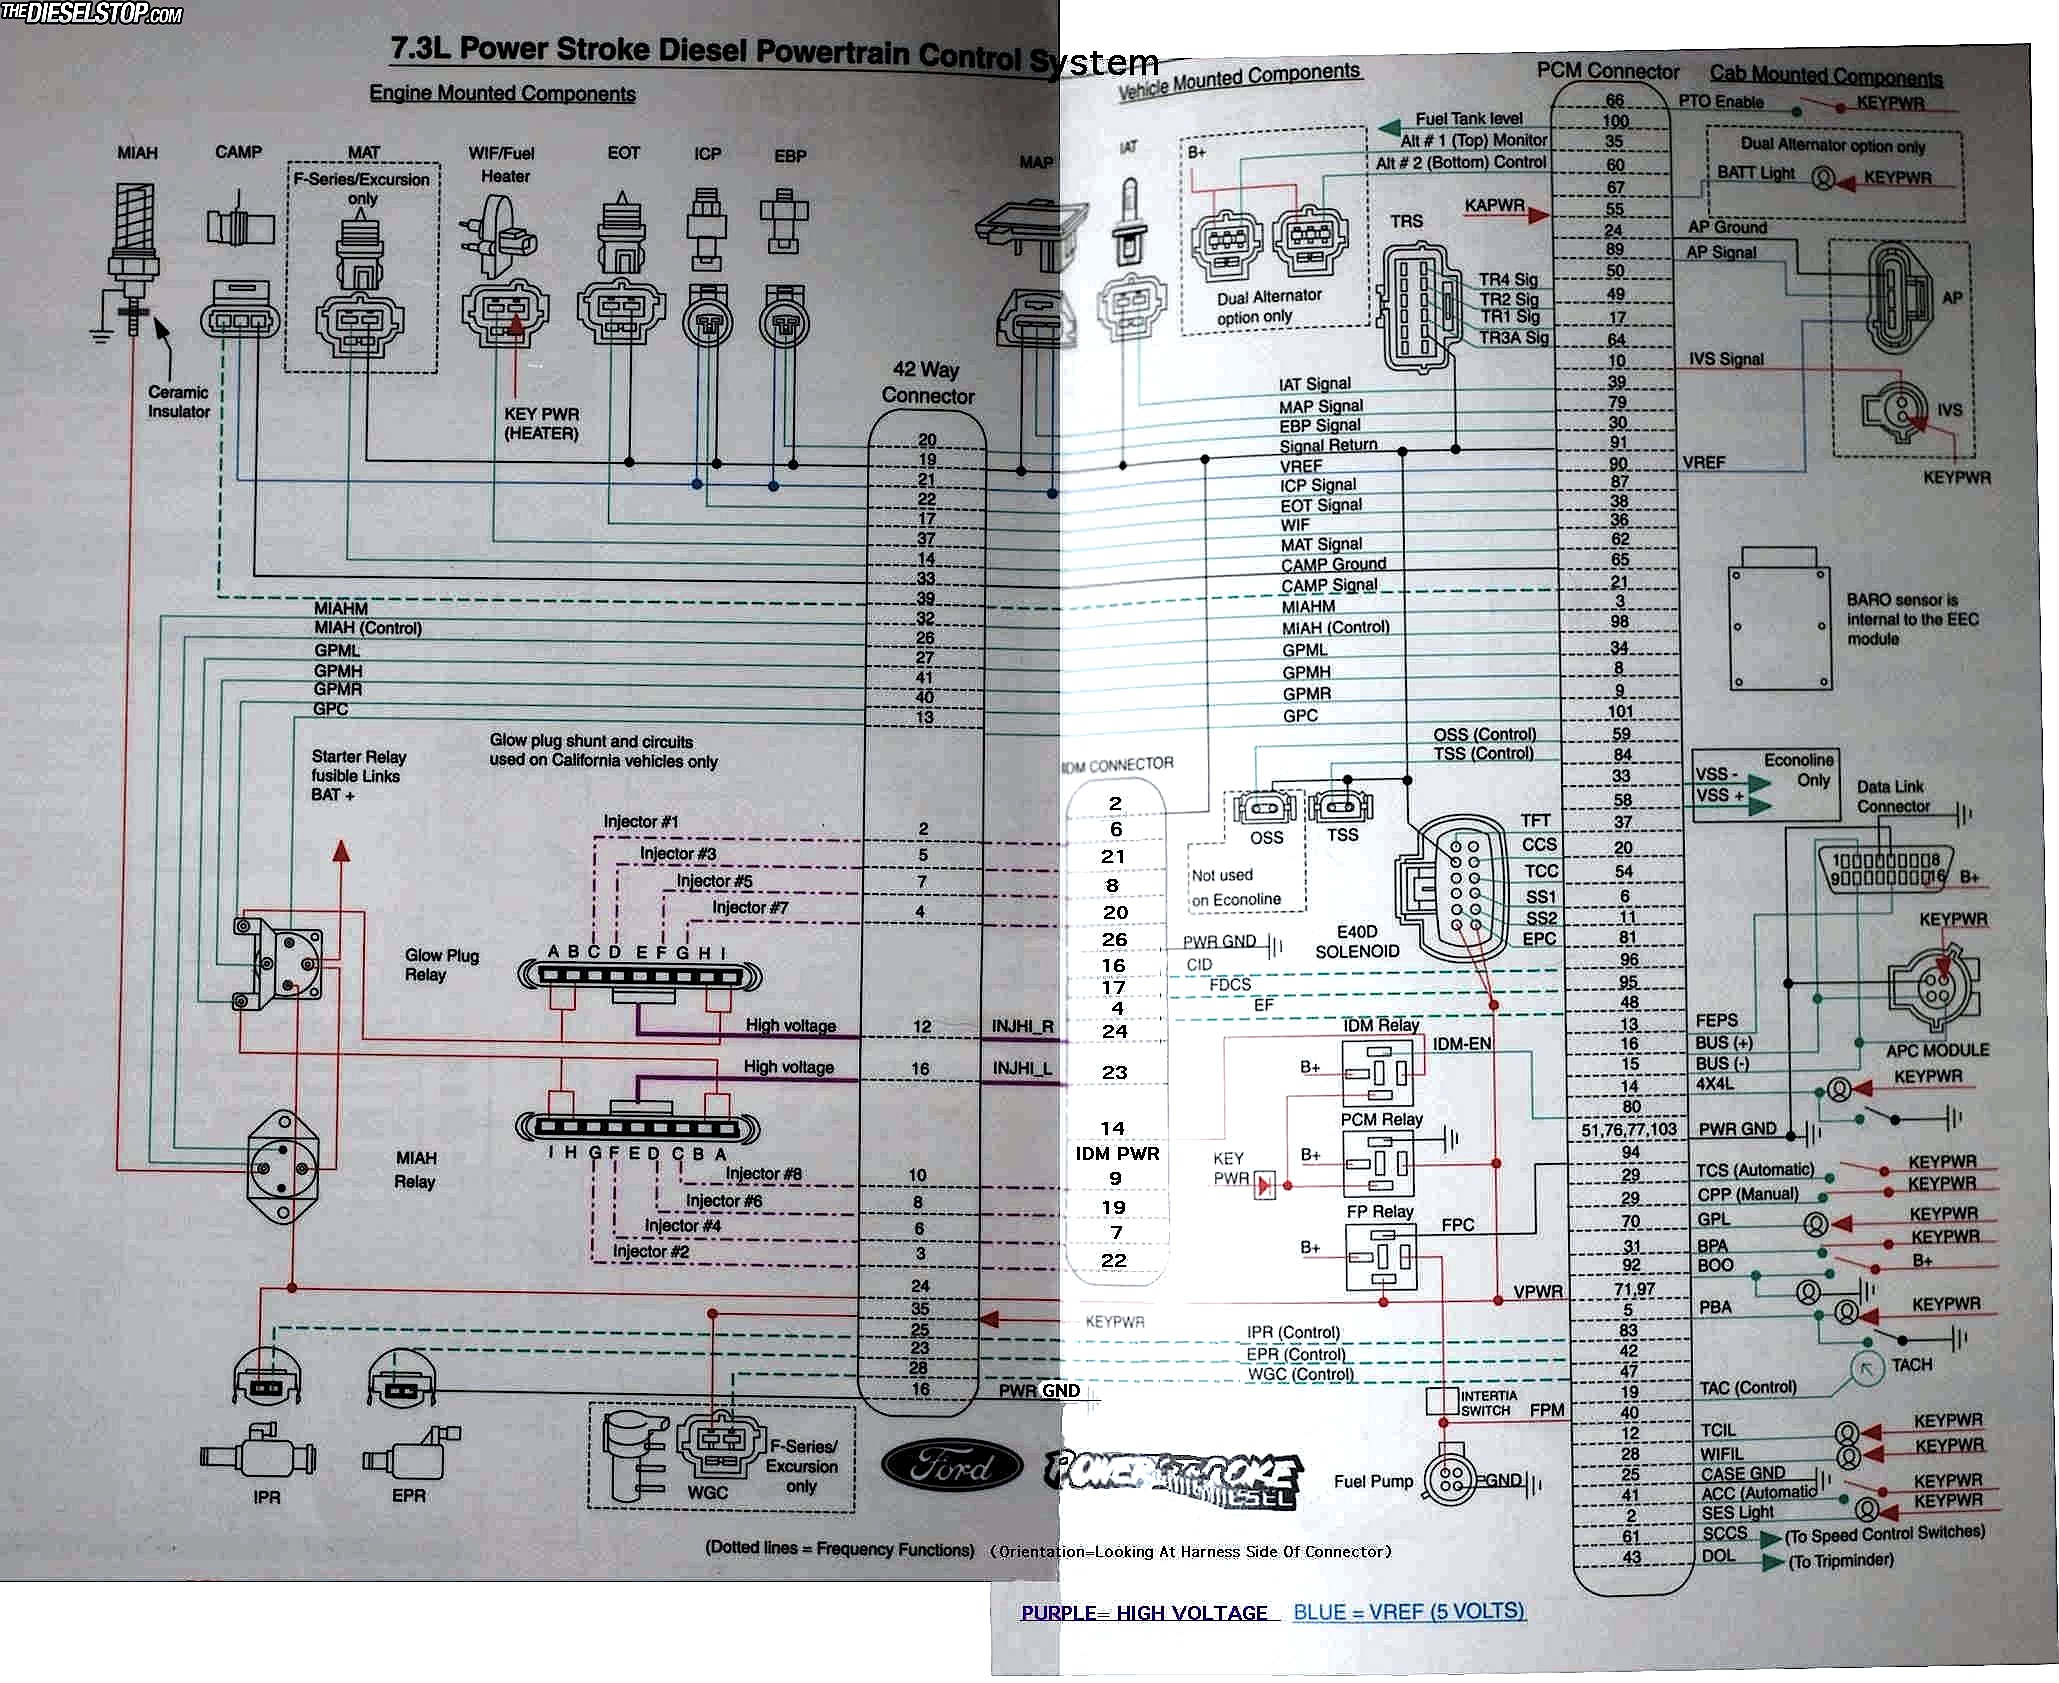 f250 7 3l wiring diagram with 1202715 Missing Bad And Lost Power 8 on 2002 Ford Powerstroke Wiring Diagram furthermore 7 3l Idi Glow Plug Harness further Glow Plug Wiring Diagram likewise Airintakeheaterplug likewise 7 3 Oil Pump Location 2008.